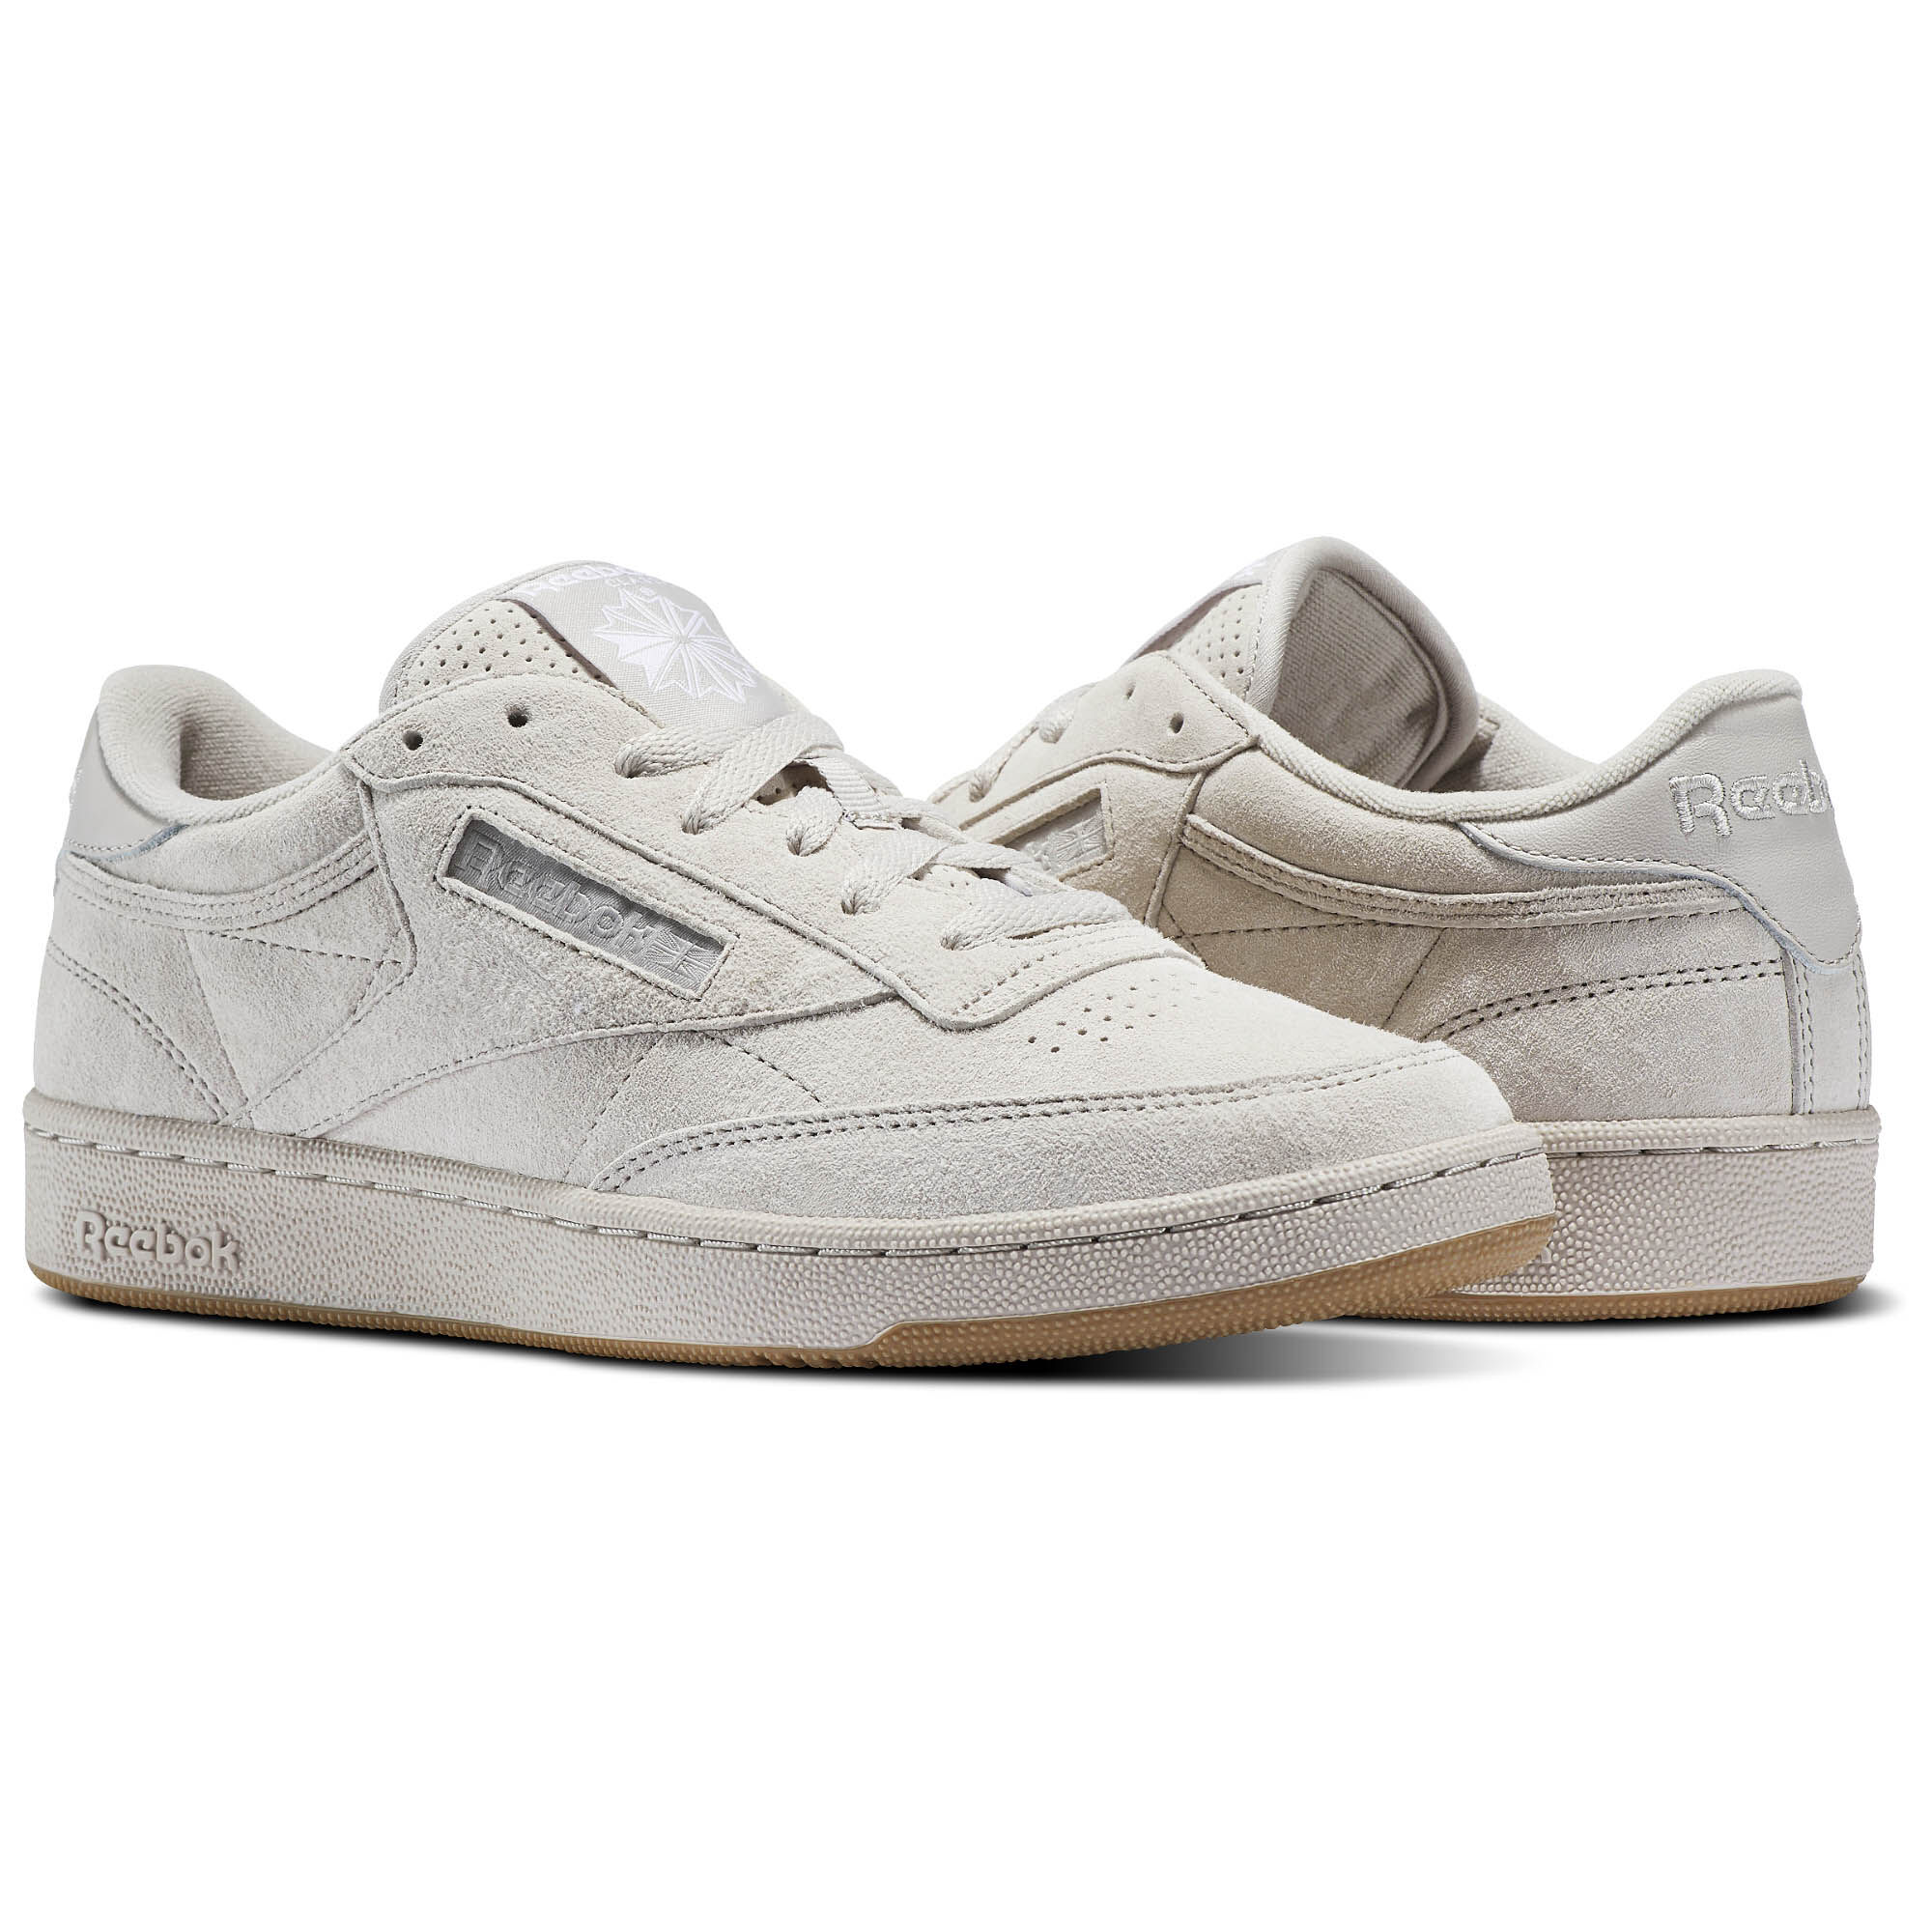 Classic Club C 85 Trainers In White And Gum - White Reebok 8MzbS